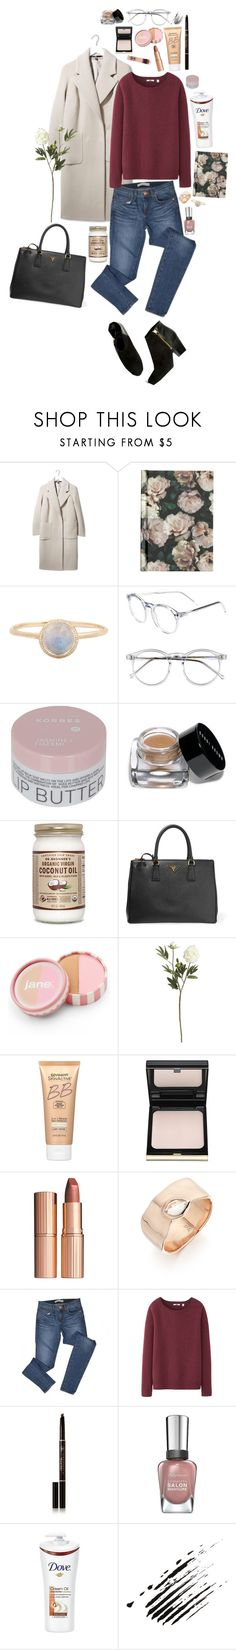 """""""Coat #6"""" by triomphevictorieuse ❤ liked on Polyvore featuring Boutique, H&M, Wildfox, Korres, Bobbi Brown Cosmetics, Prada, jane, Crate and Barrel, Miracle Skin Transformer and Kevyn Aucoin"""